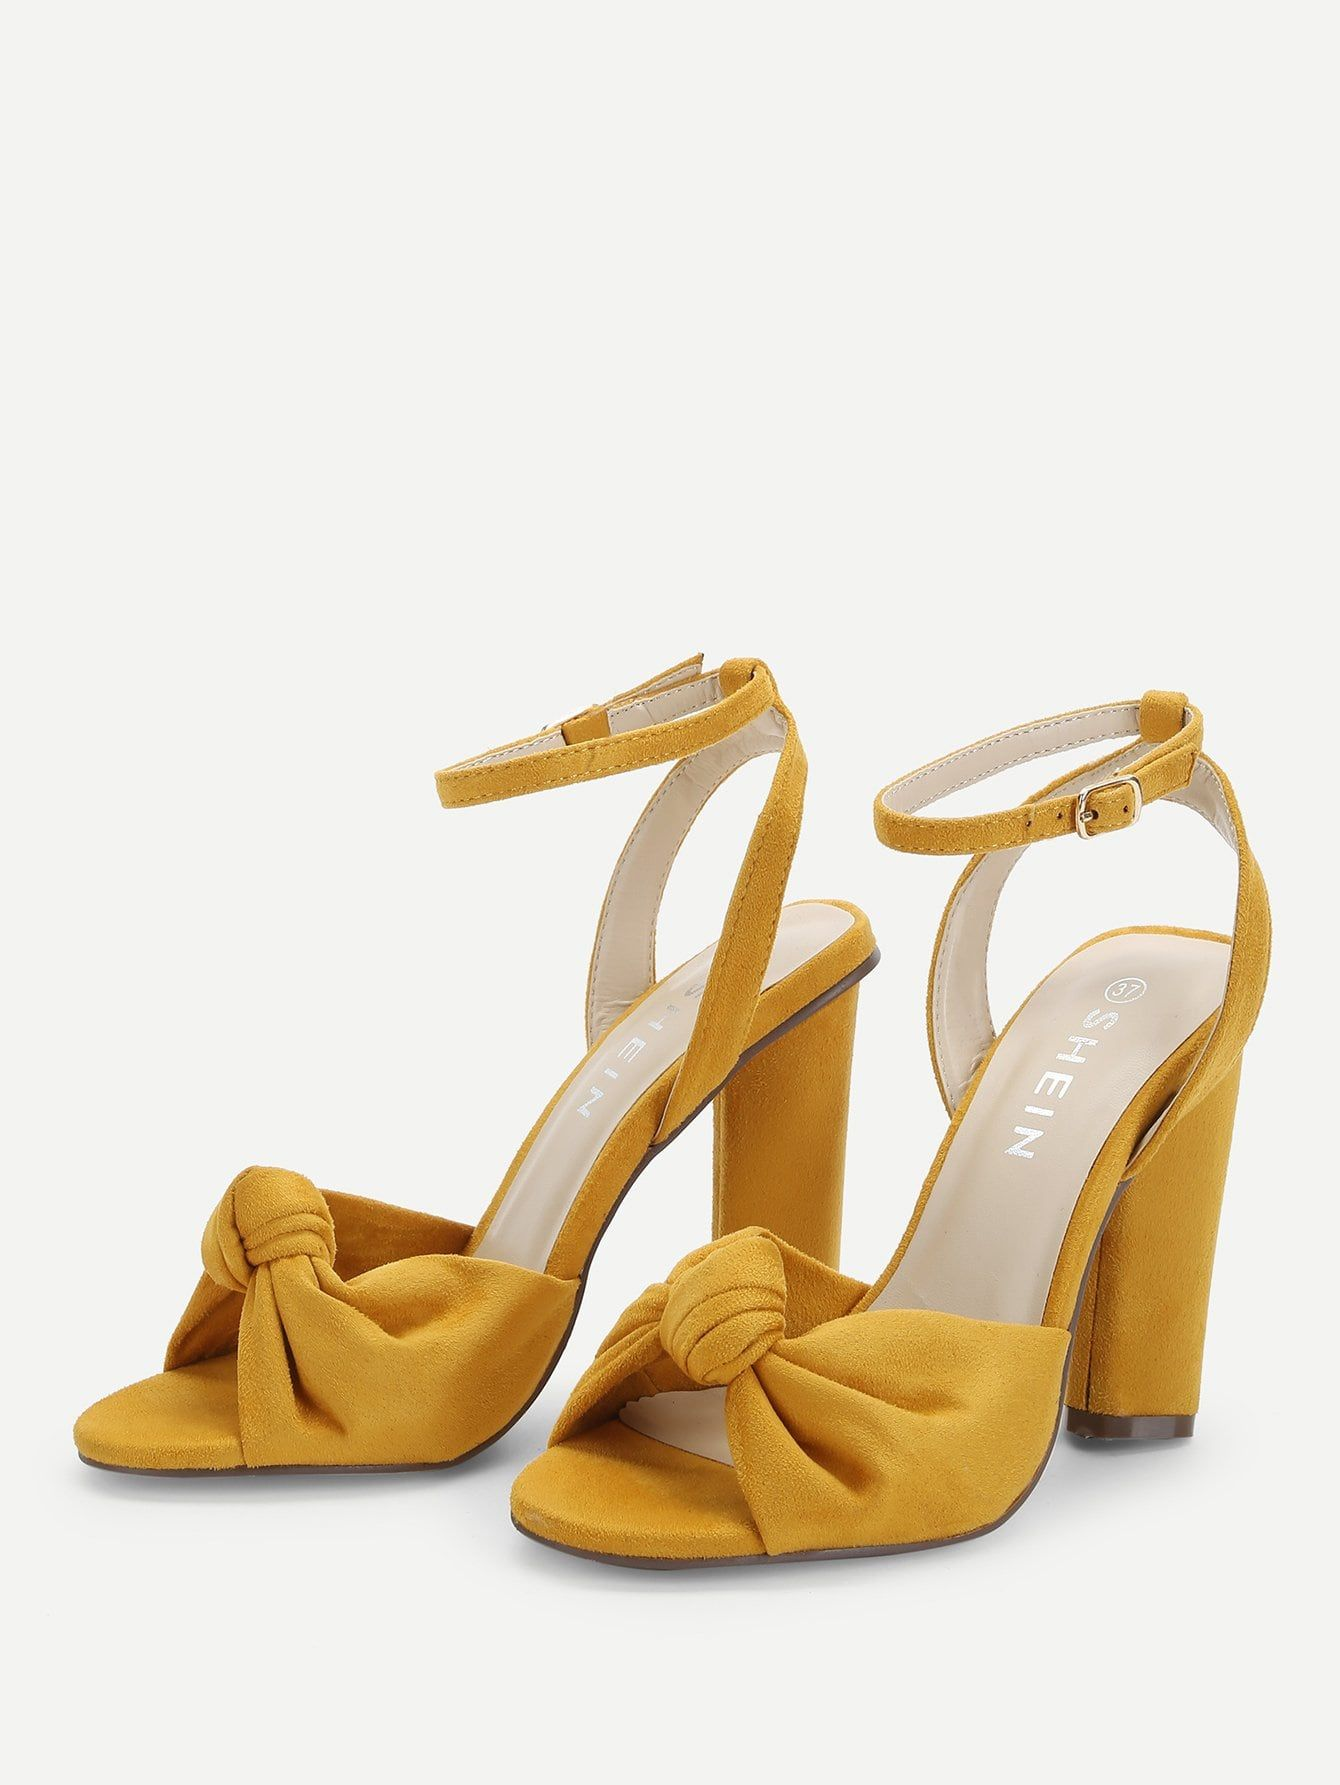 58185d91184 Elegant Open Toe Ankle strap Yellow High Heel Chunky Knot Design Block  Heeled Sandals